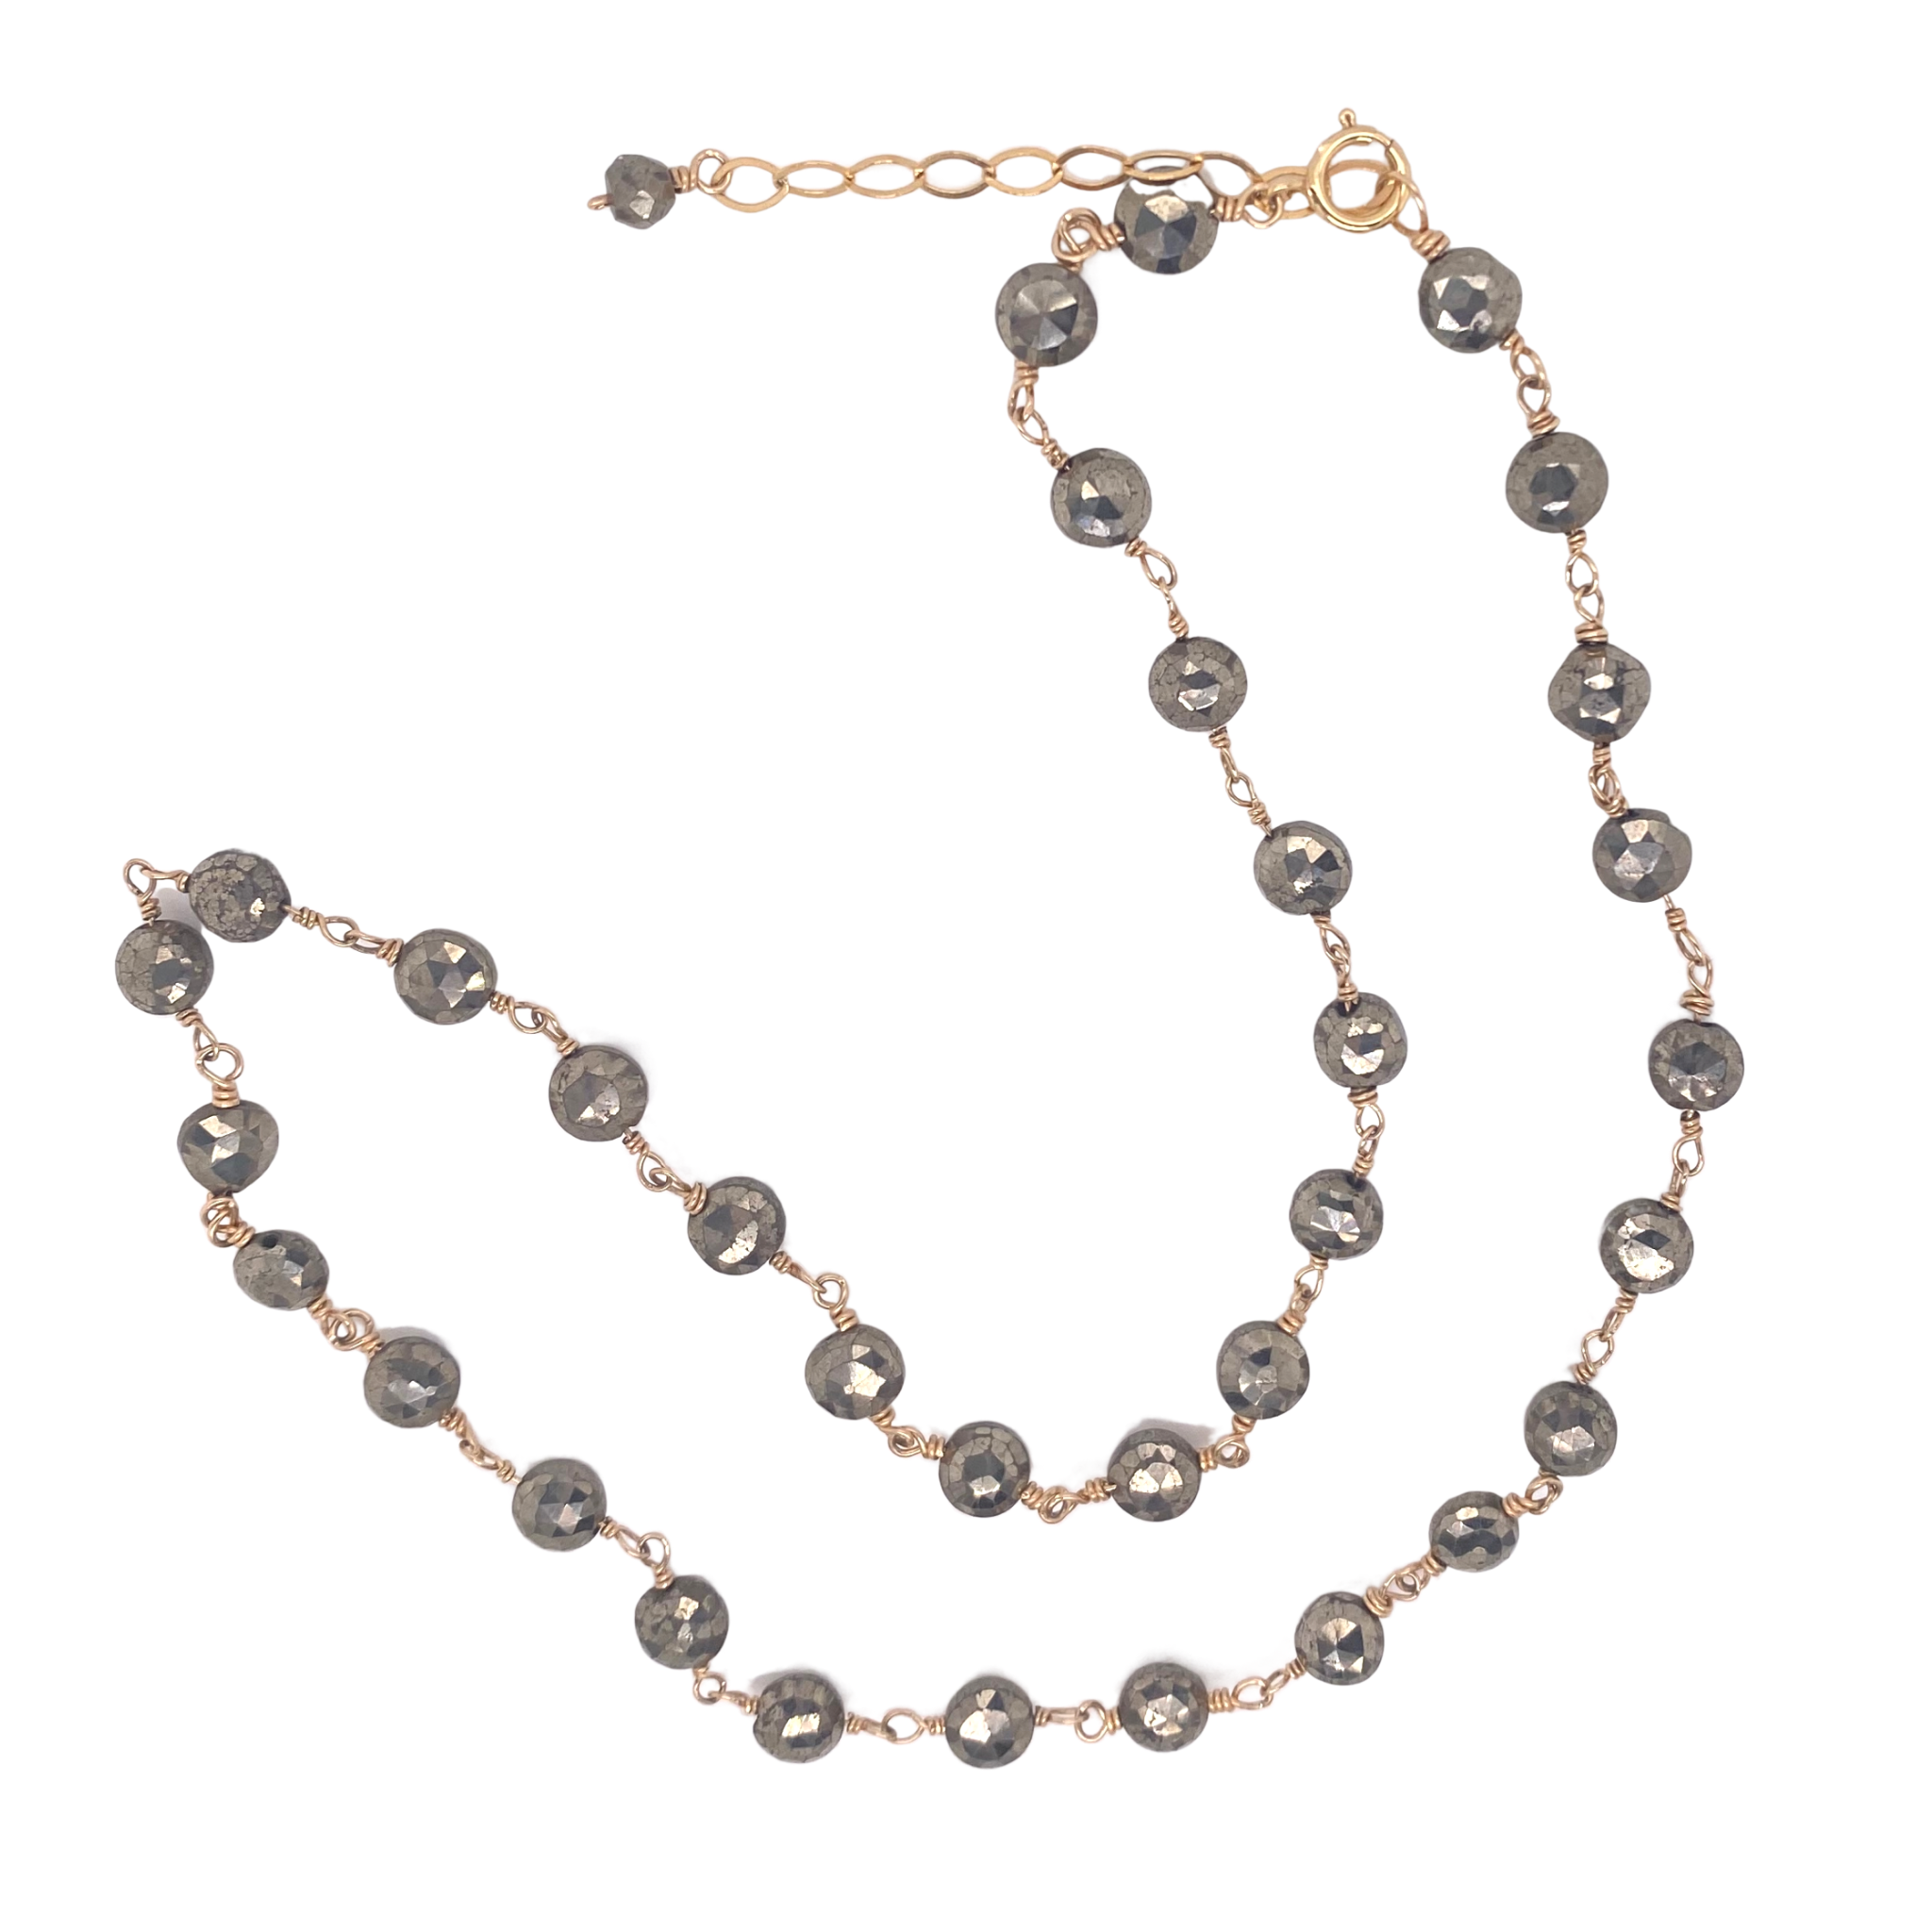 Faceted Pyrite Necklace - Karlas Jewelry & Gifts